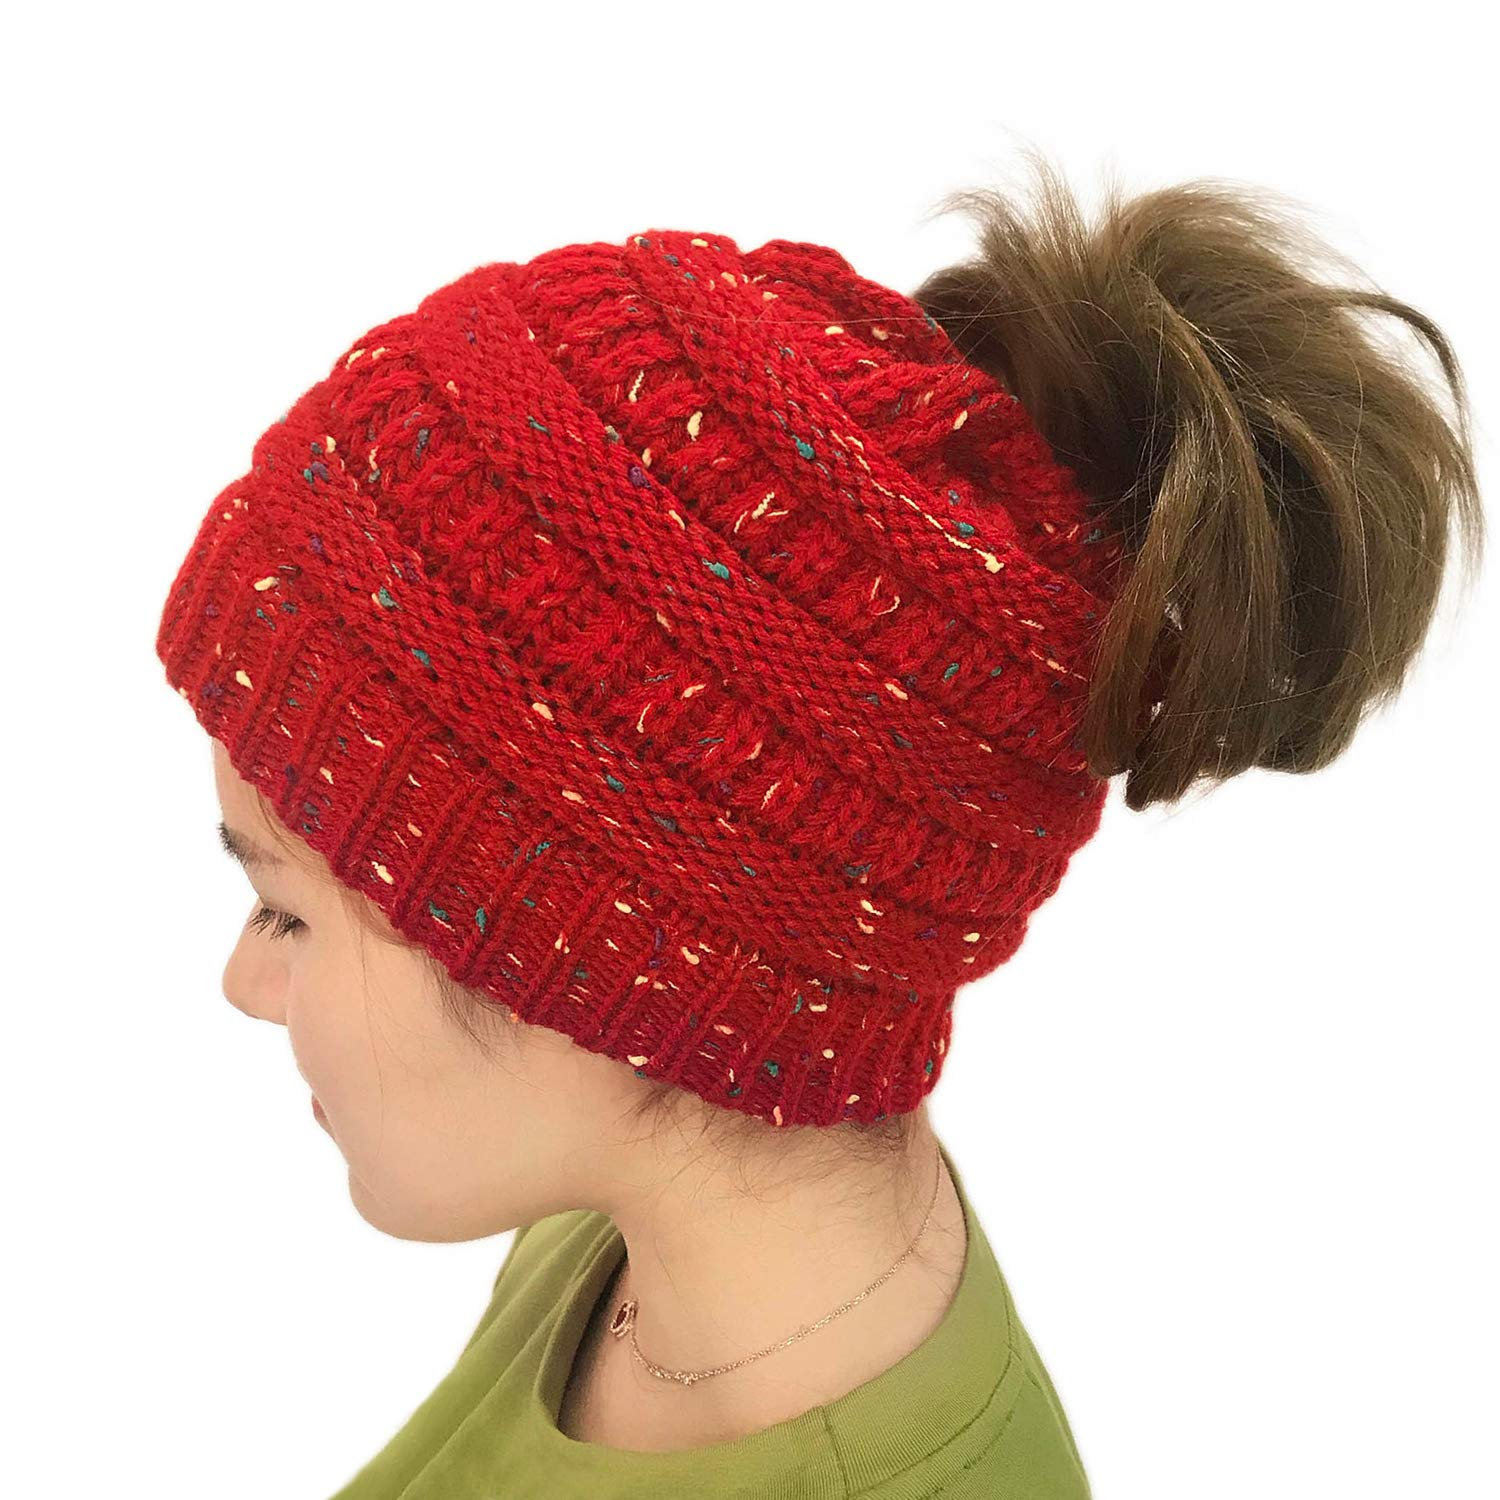 Lamdgbway Chunky Knit Beanie Colored-Spots Stretch Cable Messy Ponytail Beanie Bun Hat LWHats17020-Ba